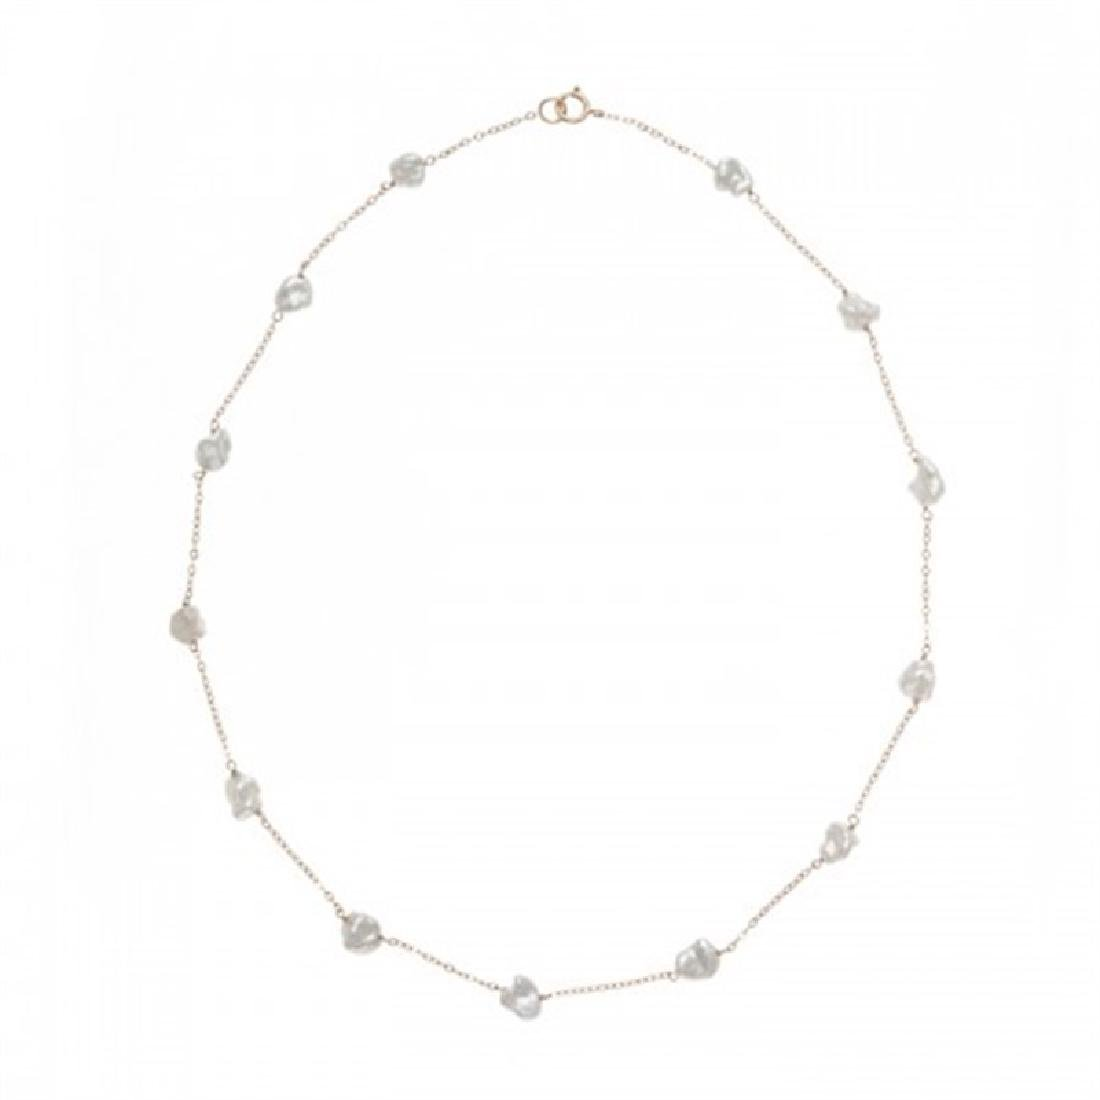 6.0-7.0mm Keshi Tin Cup Pearl Necklace